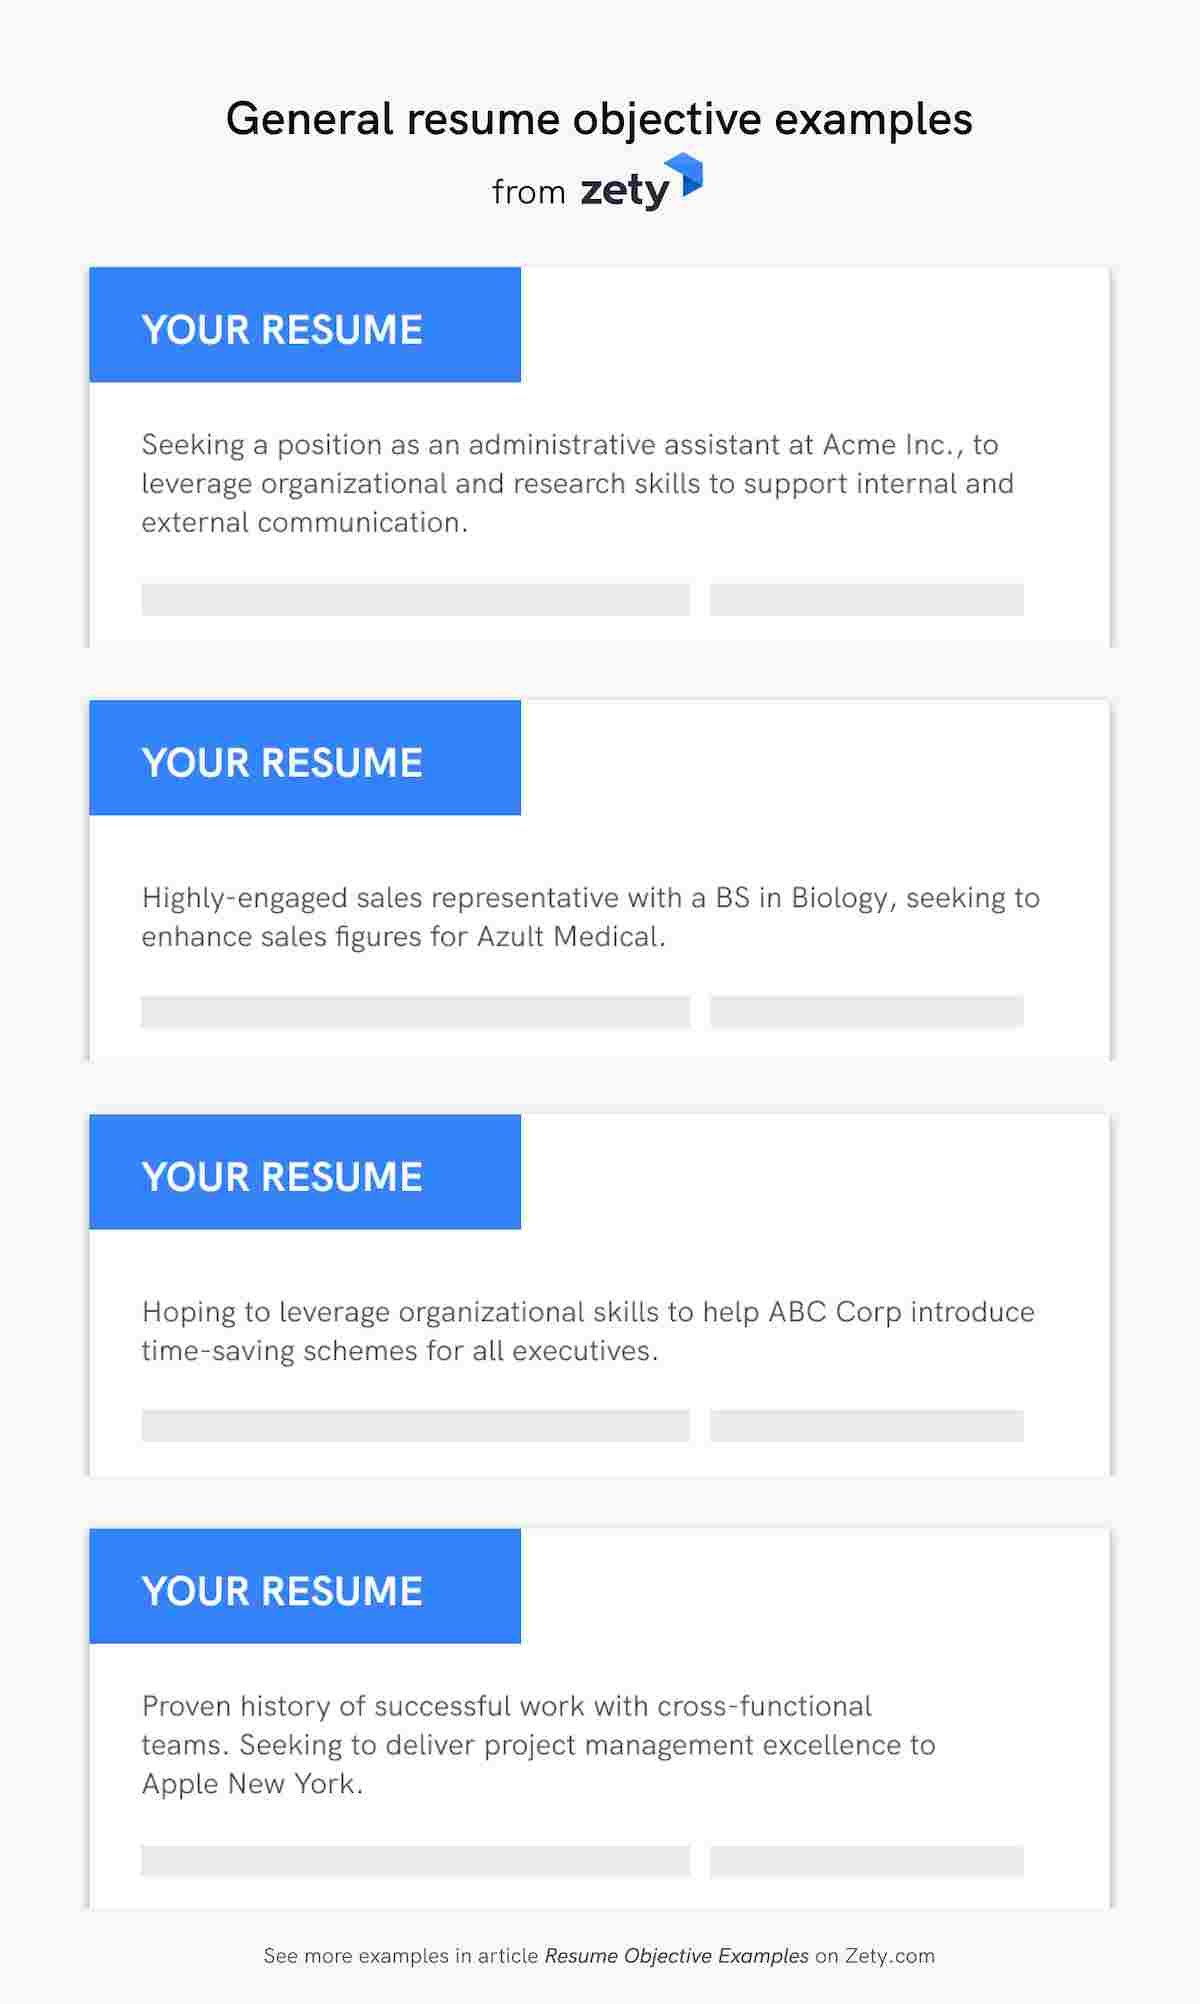 resume objective examples career objectives for all jobs non profit general economics Resume Non Profit Resume Objective Examples